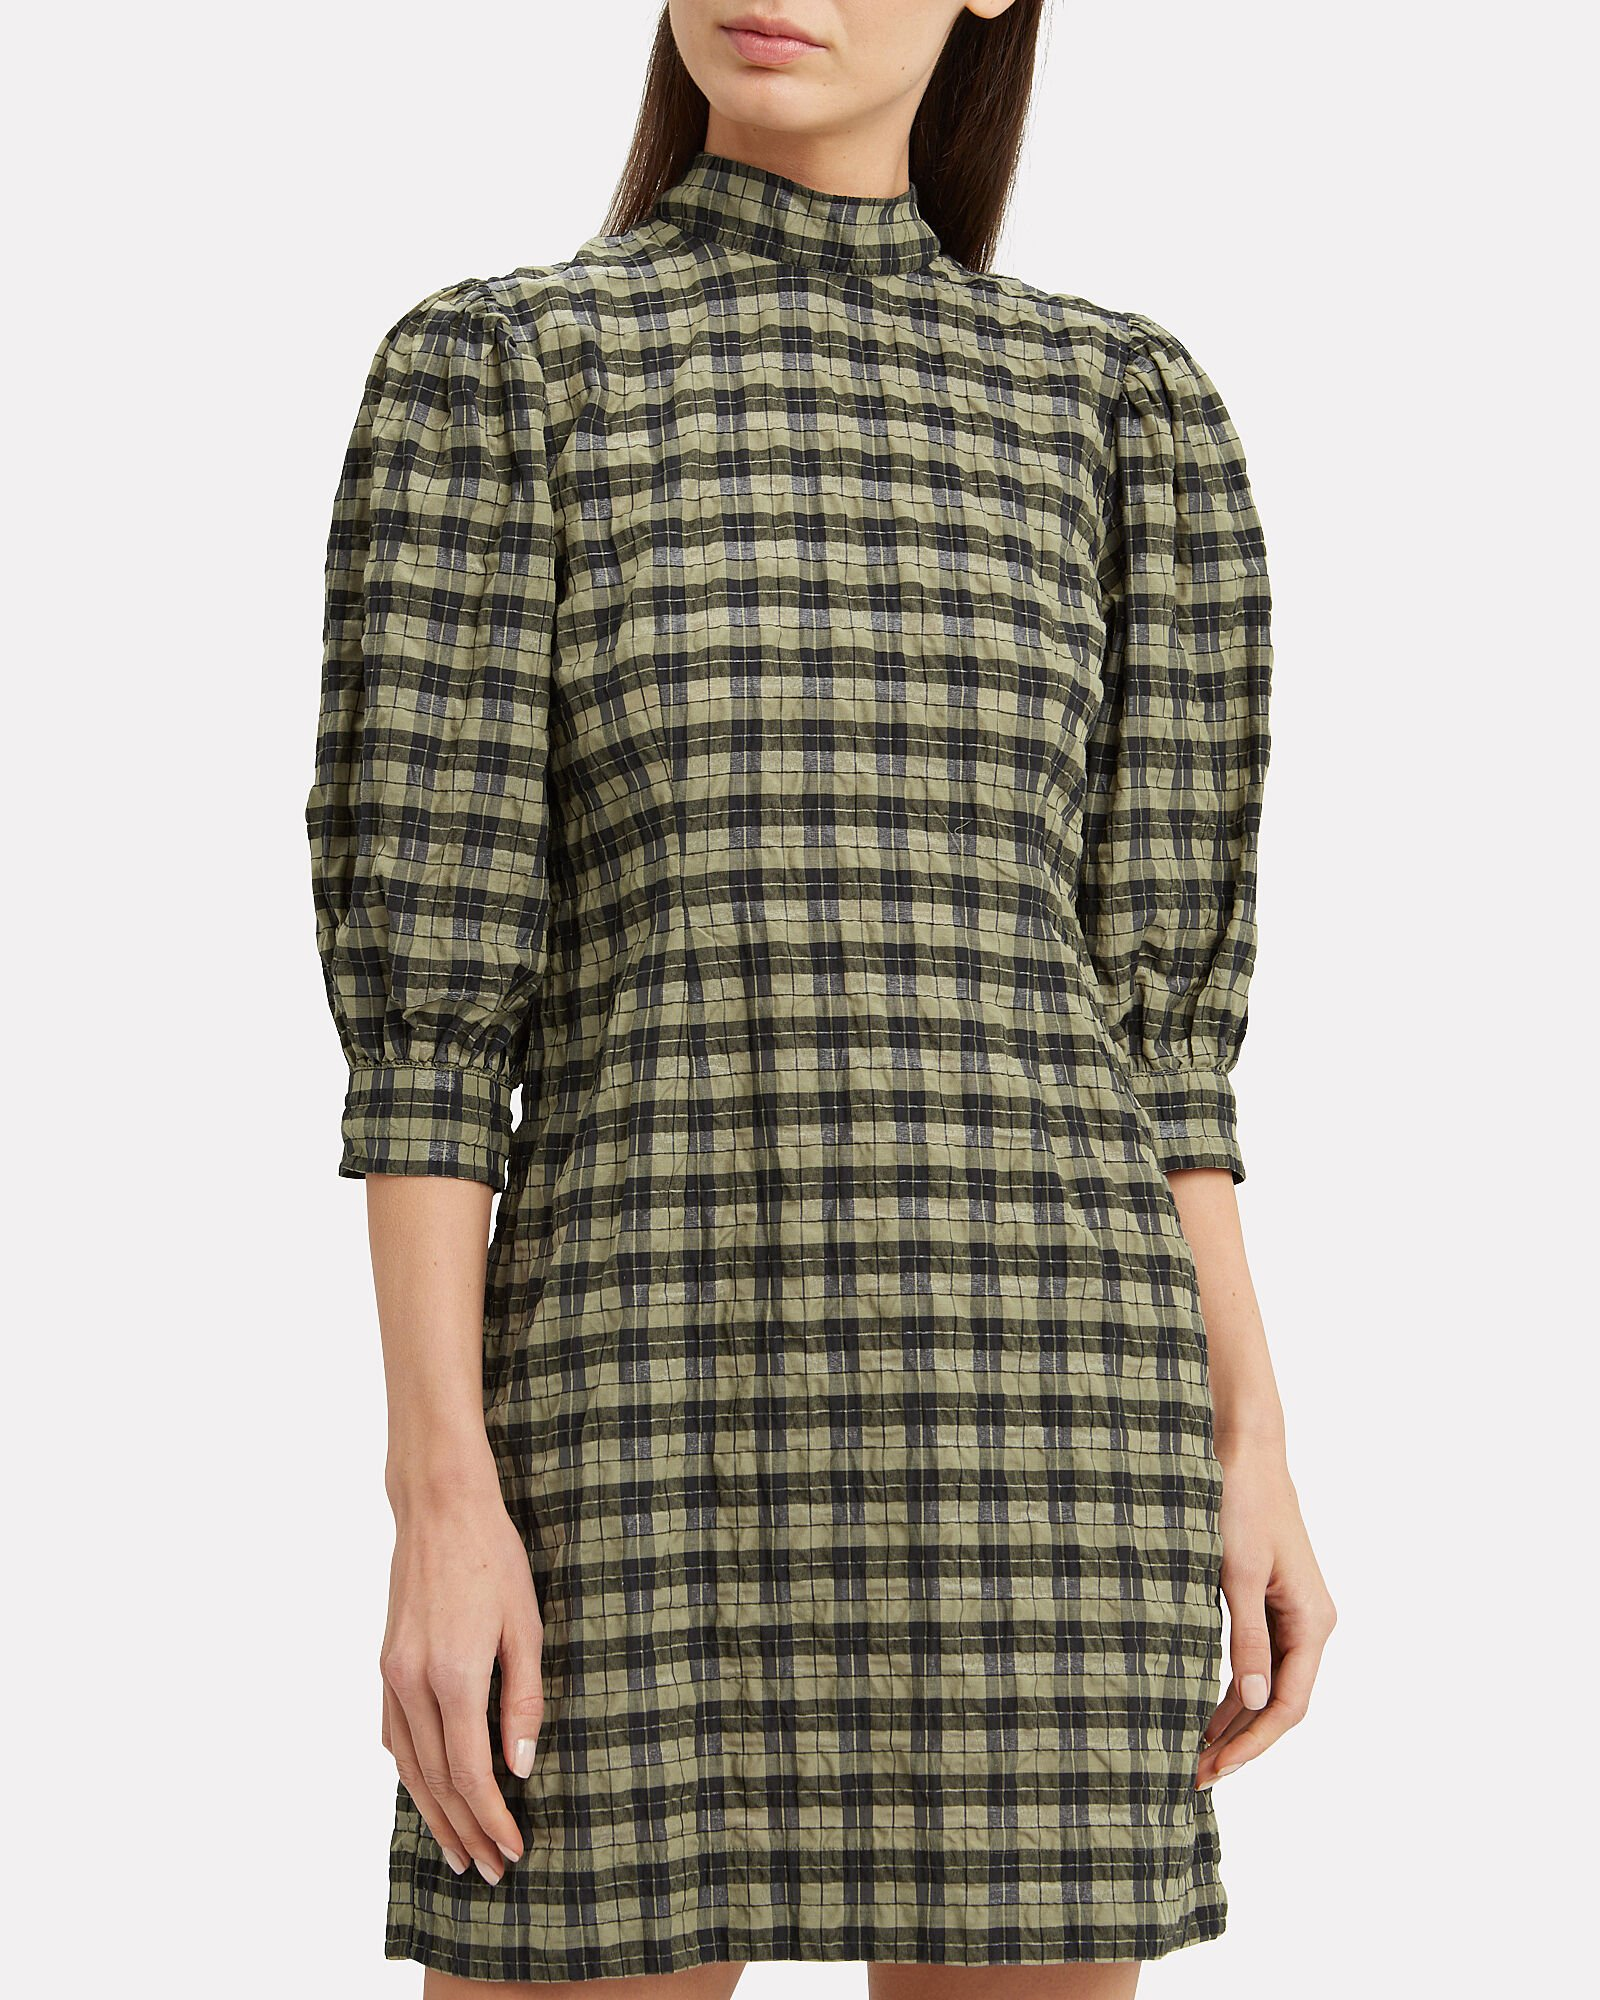 Gingham Seersucker Dress, OLIVE/ARMY, hi-res